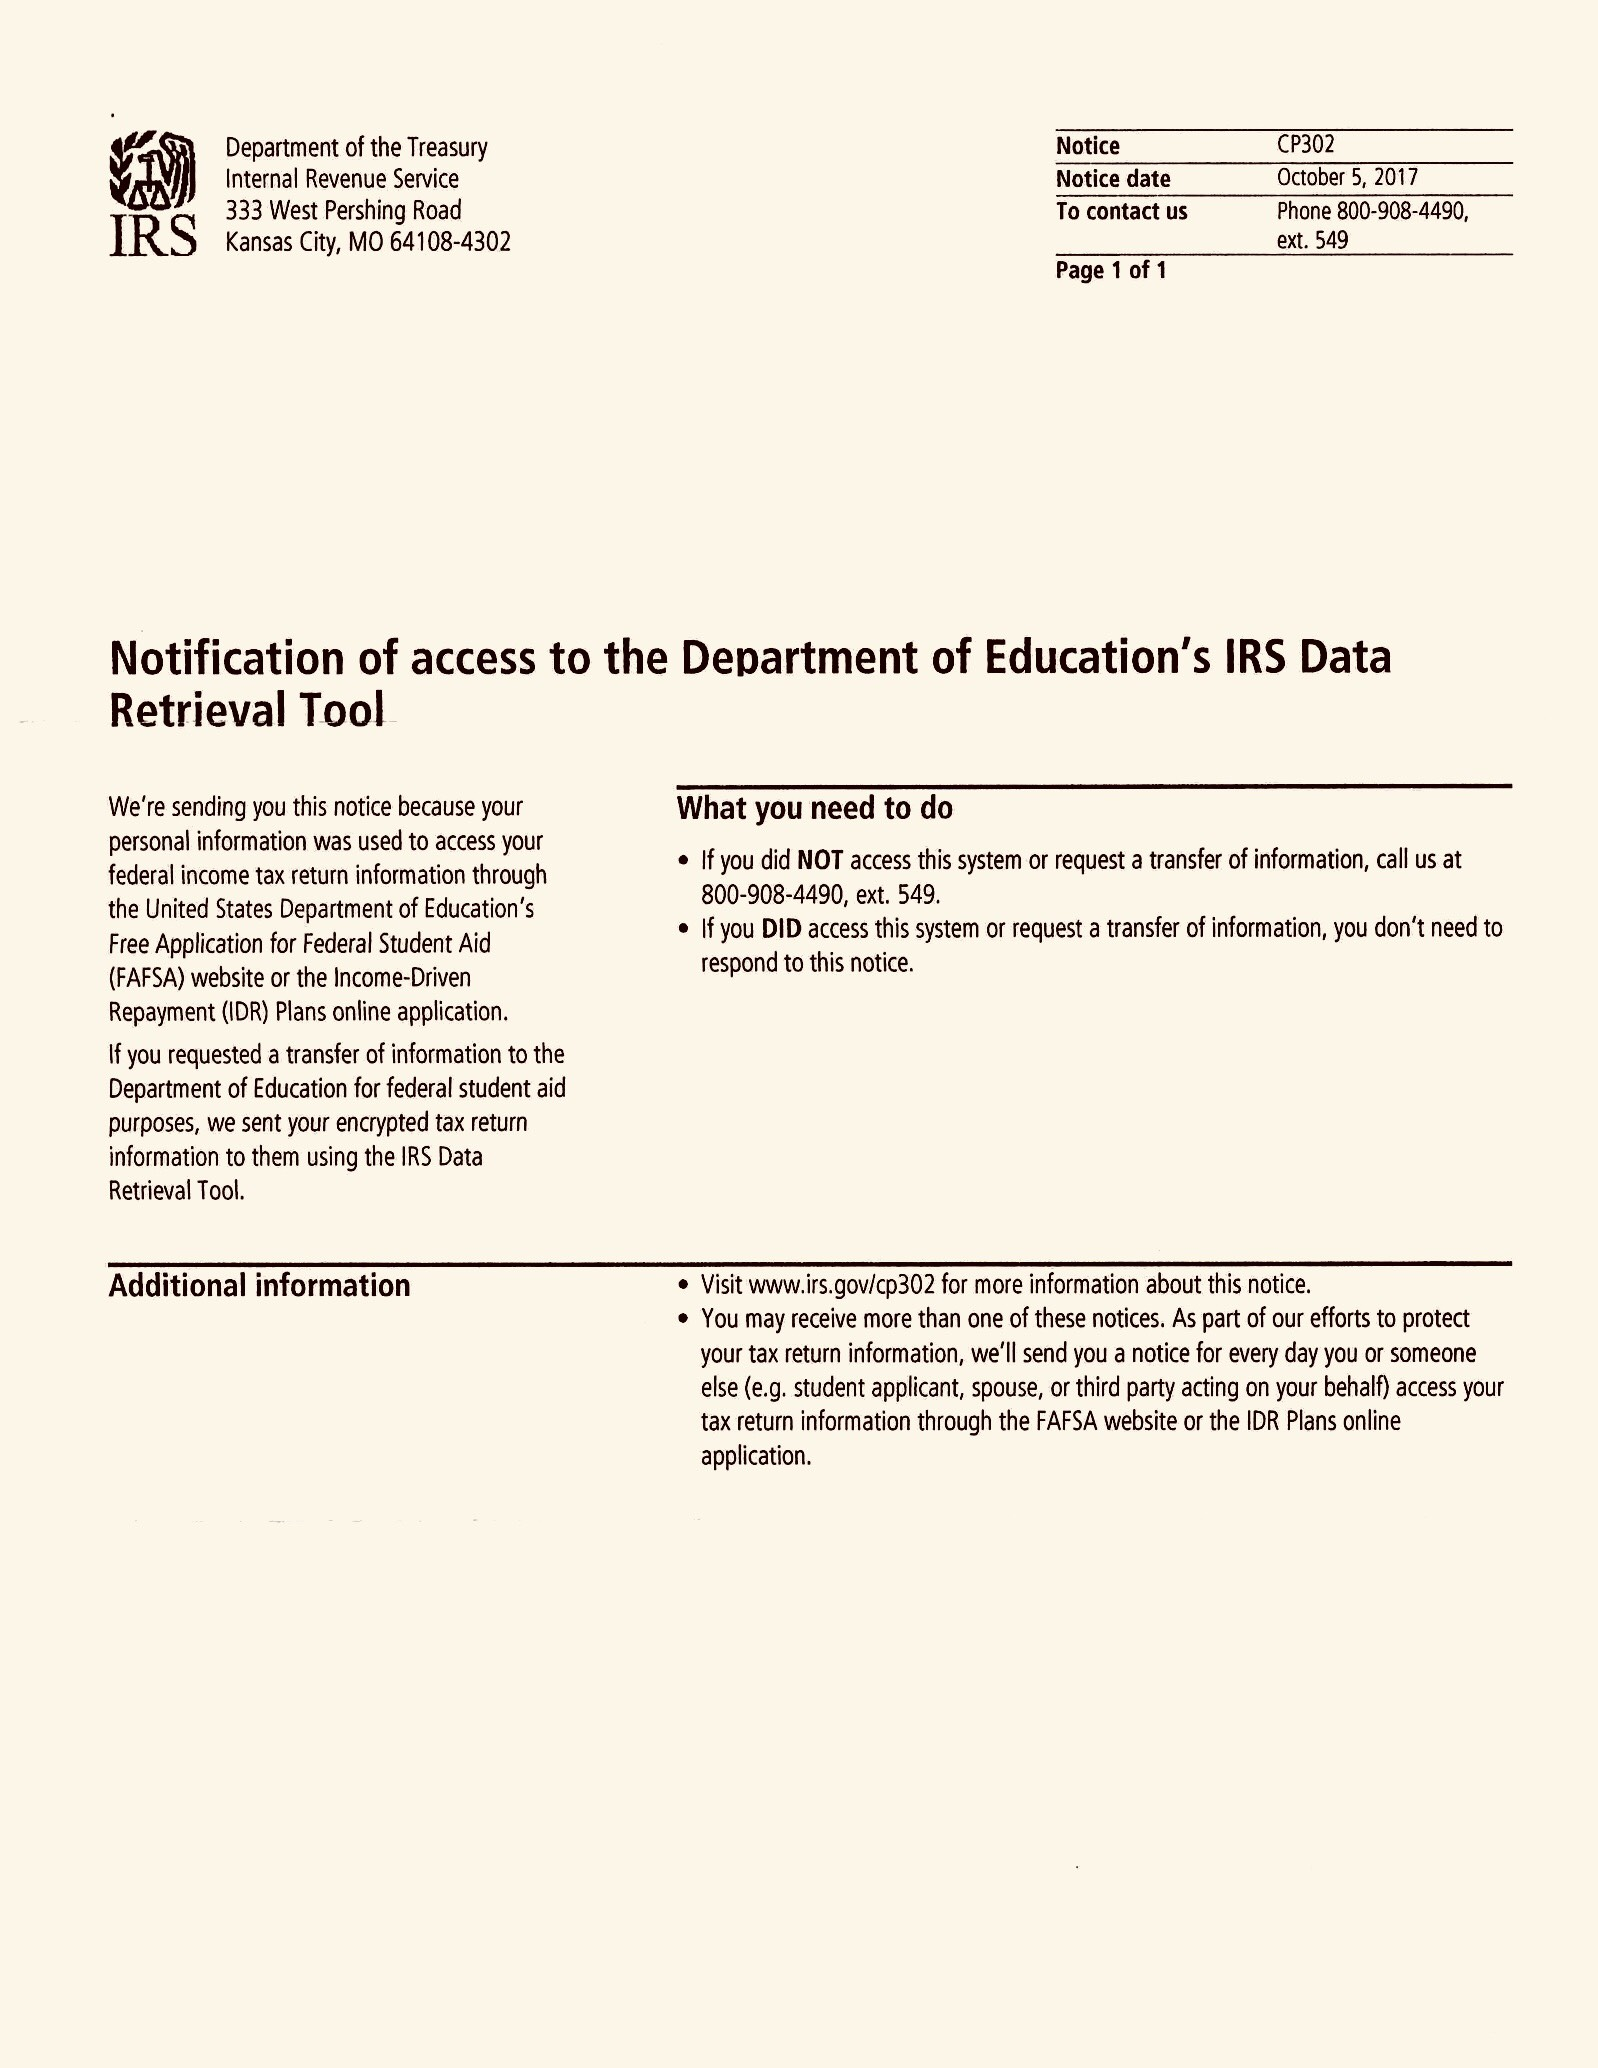 if you received this letter and you did not use the irs data retrieval tool you should follow the instructions in the letter and contact the irs